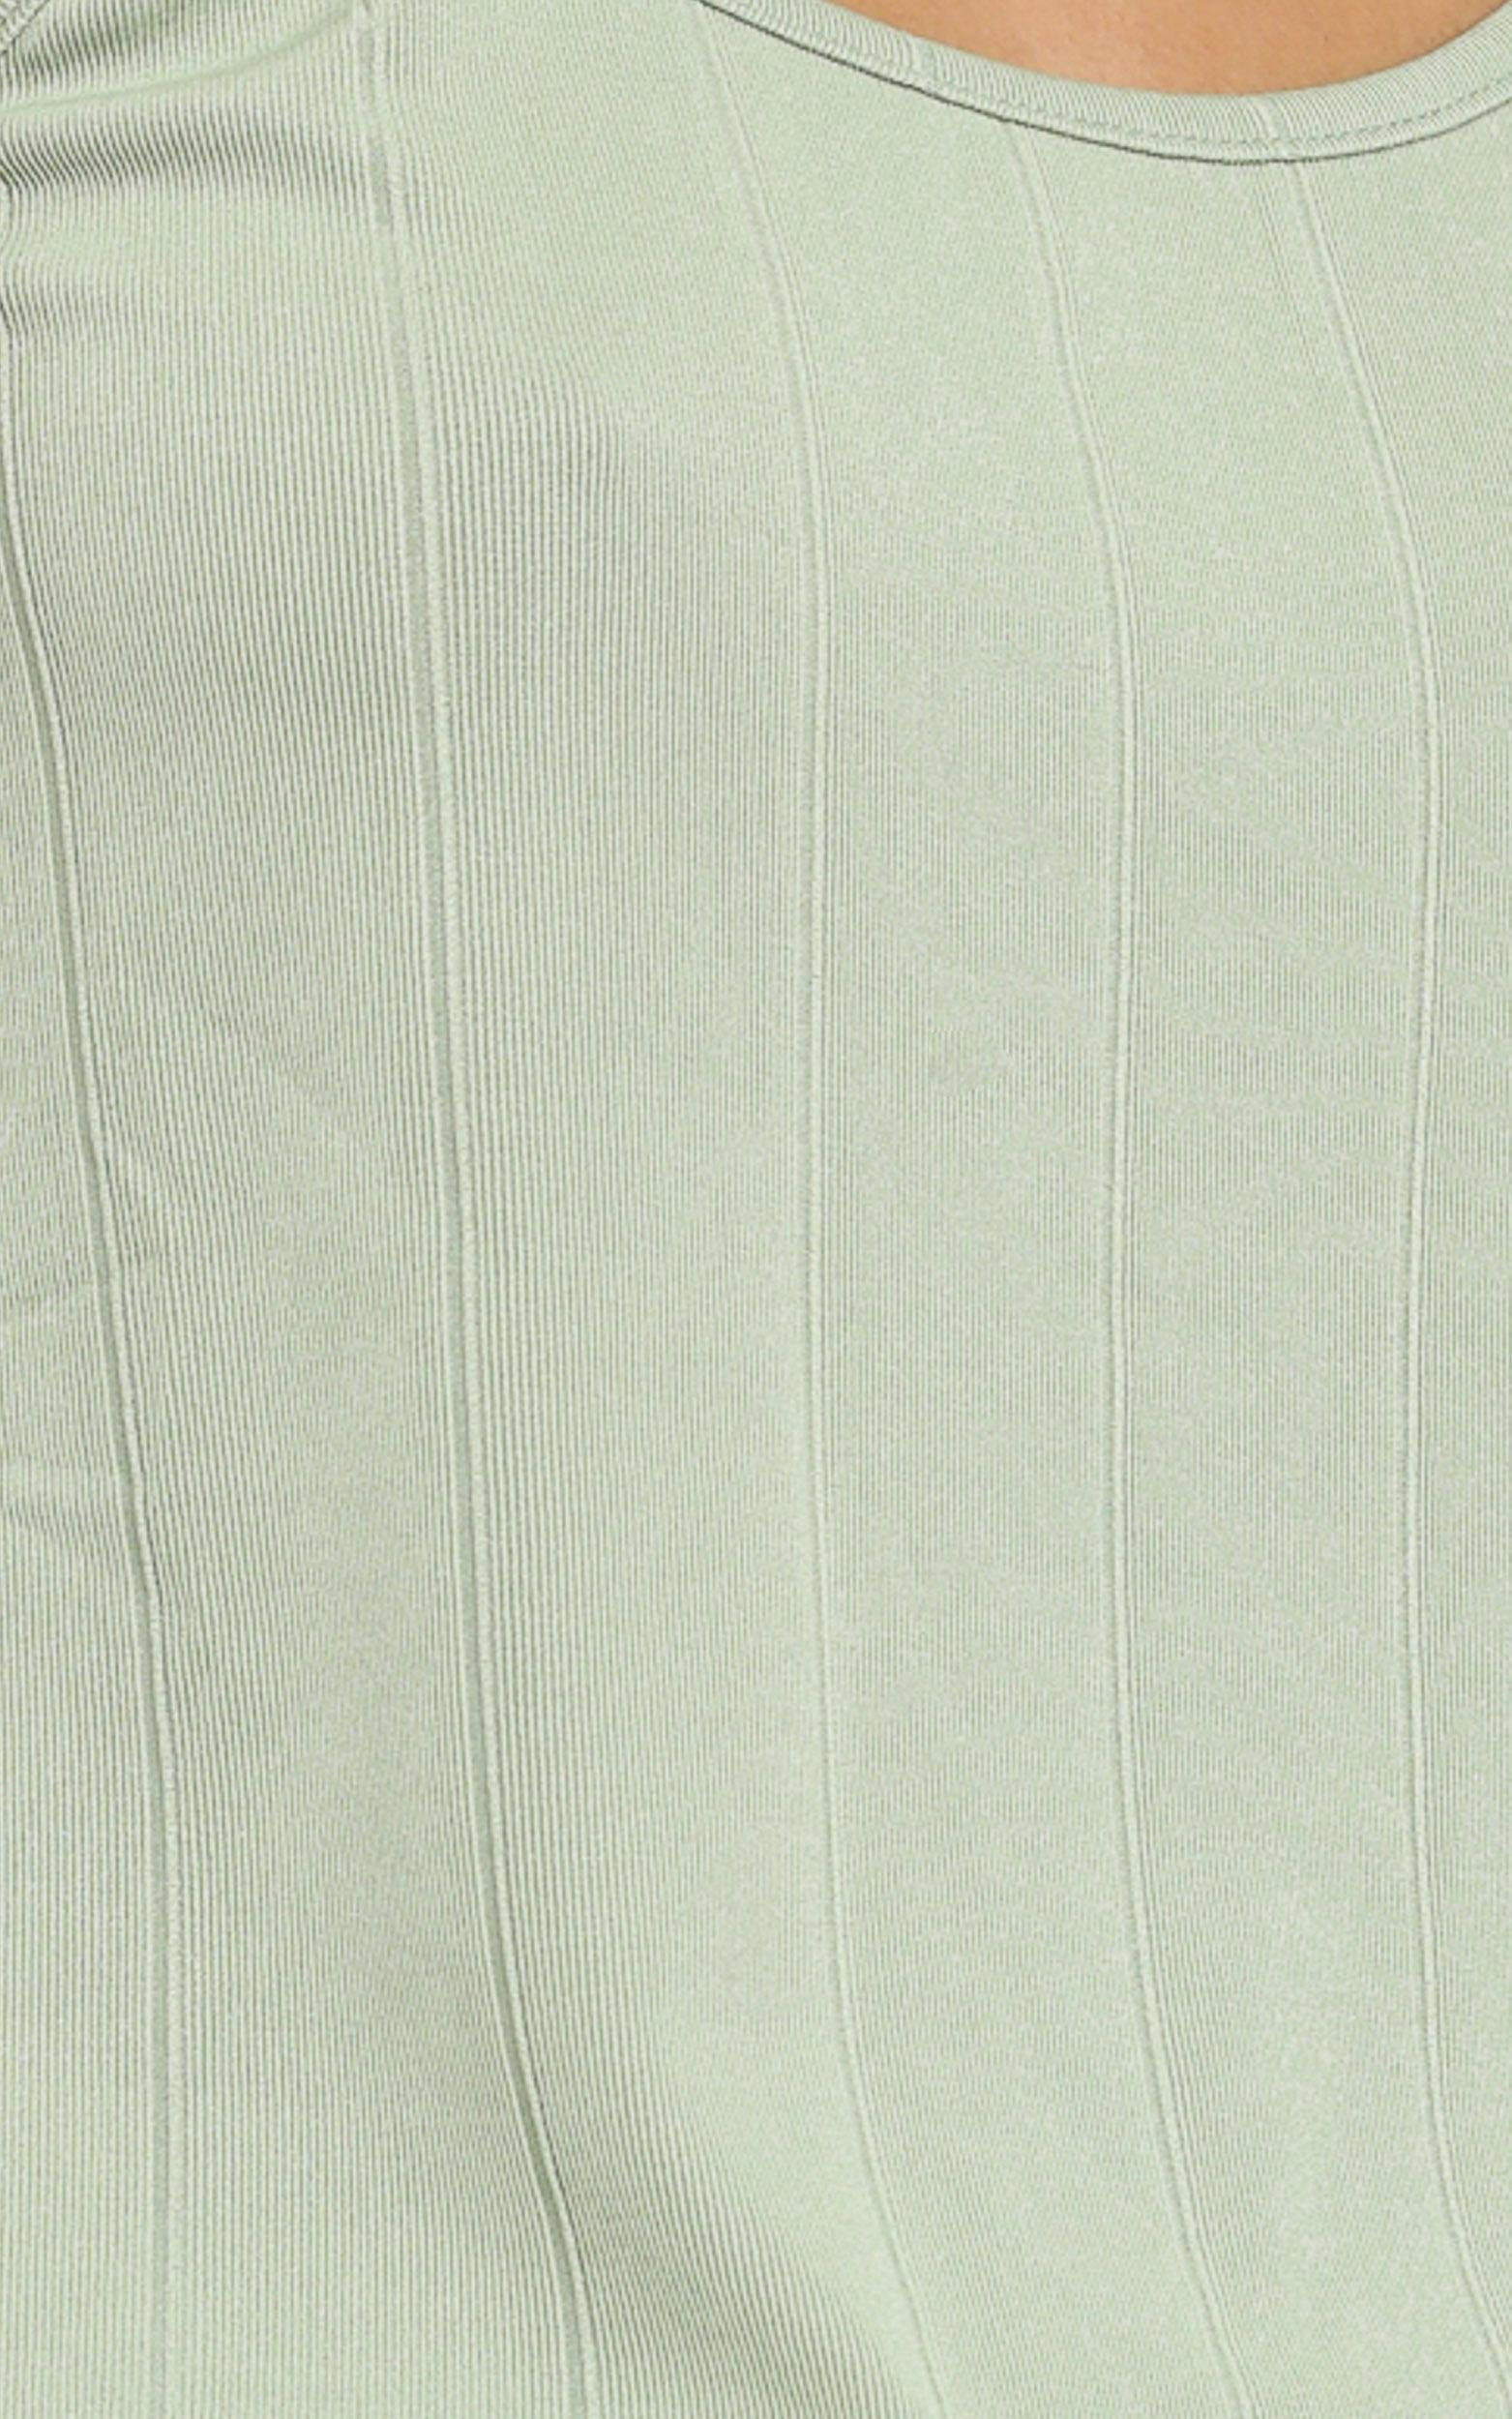 Shallow Singlet in Olive - 6 (XS), Green, hi-res image number null